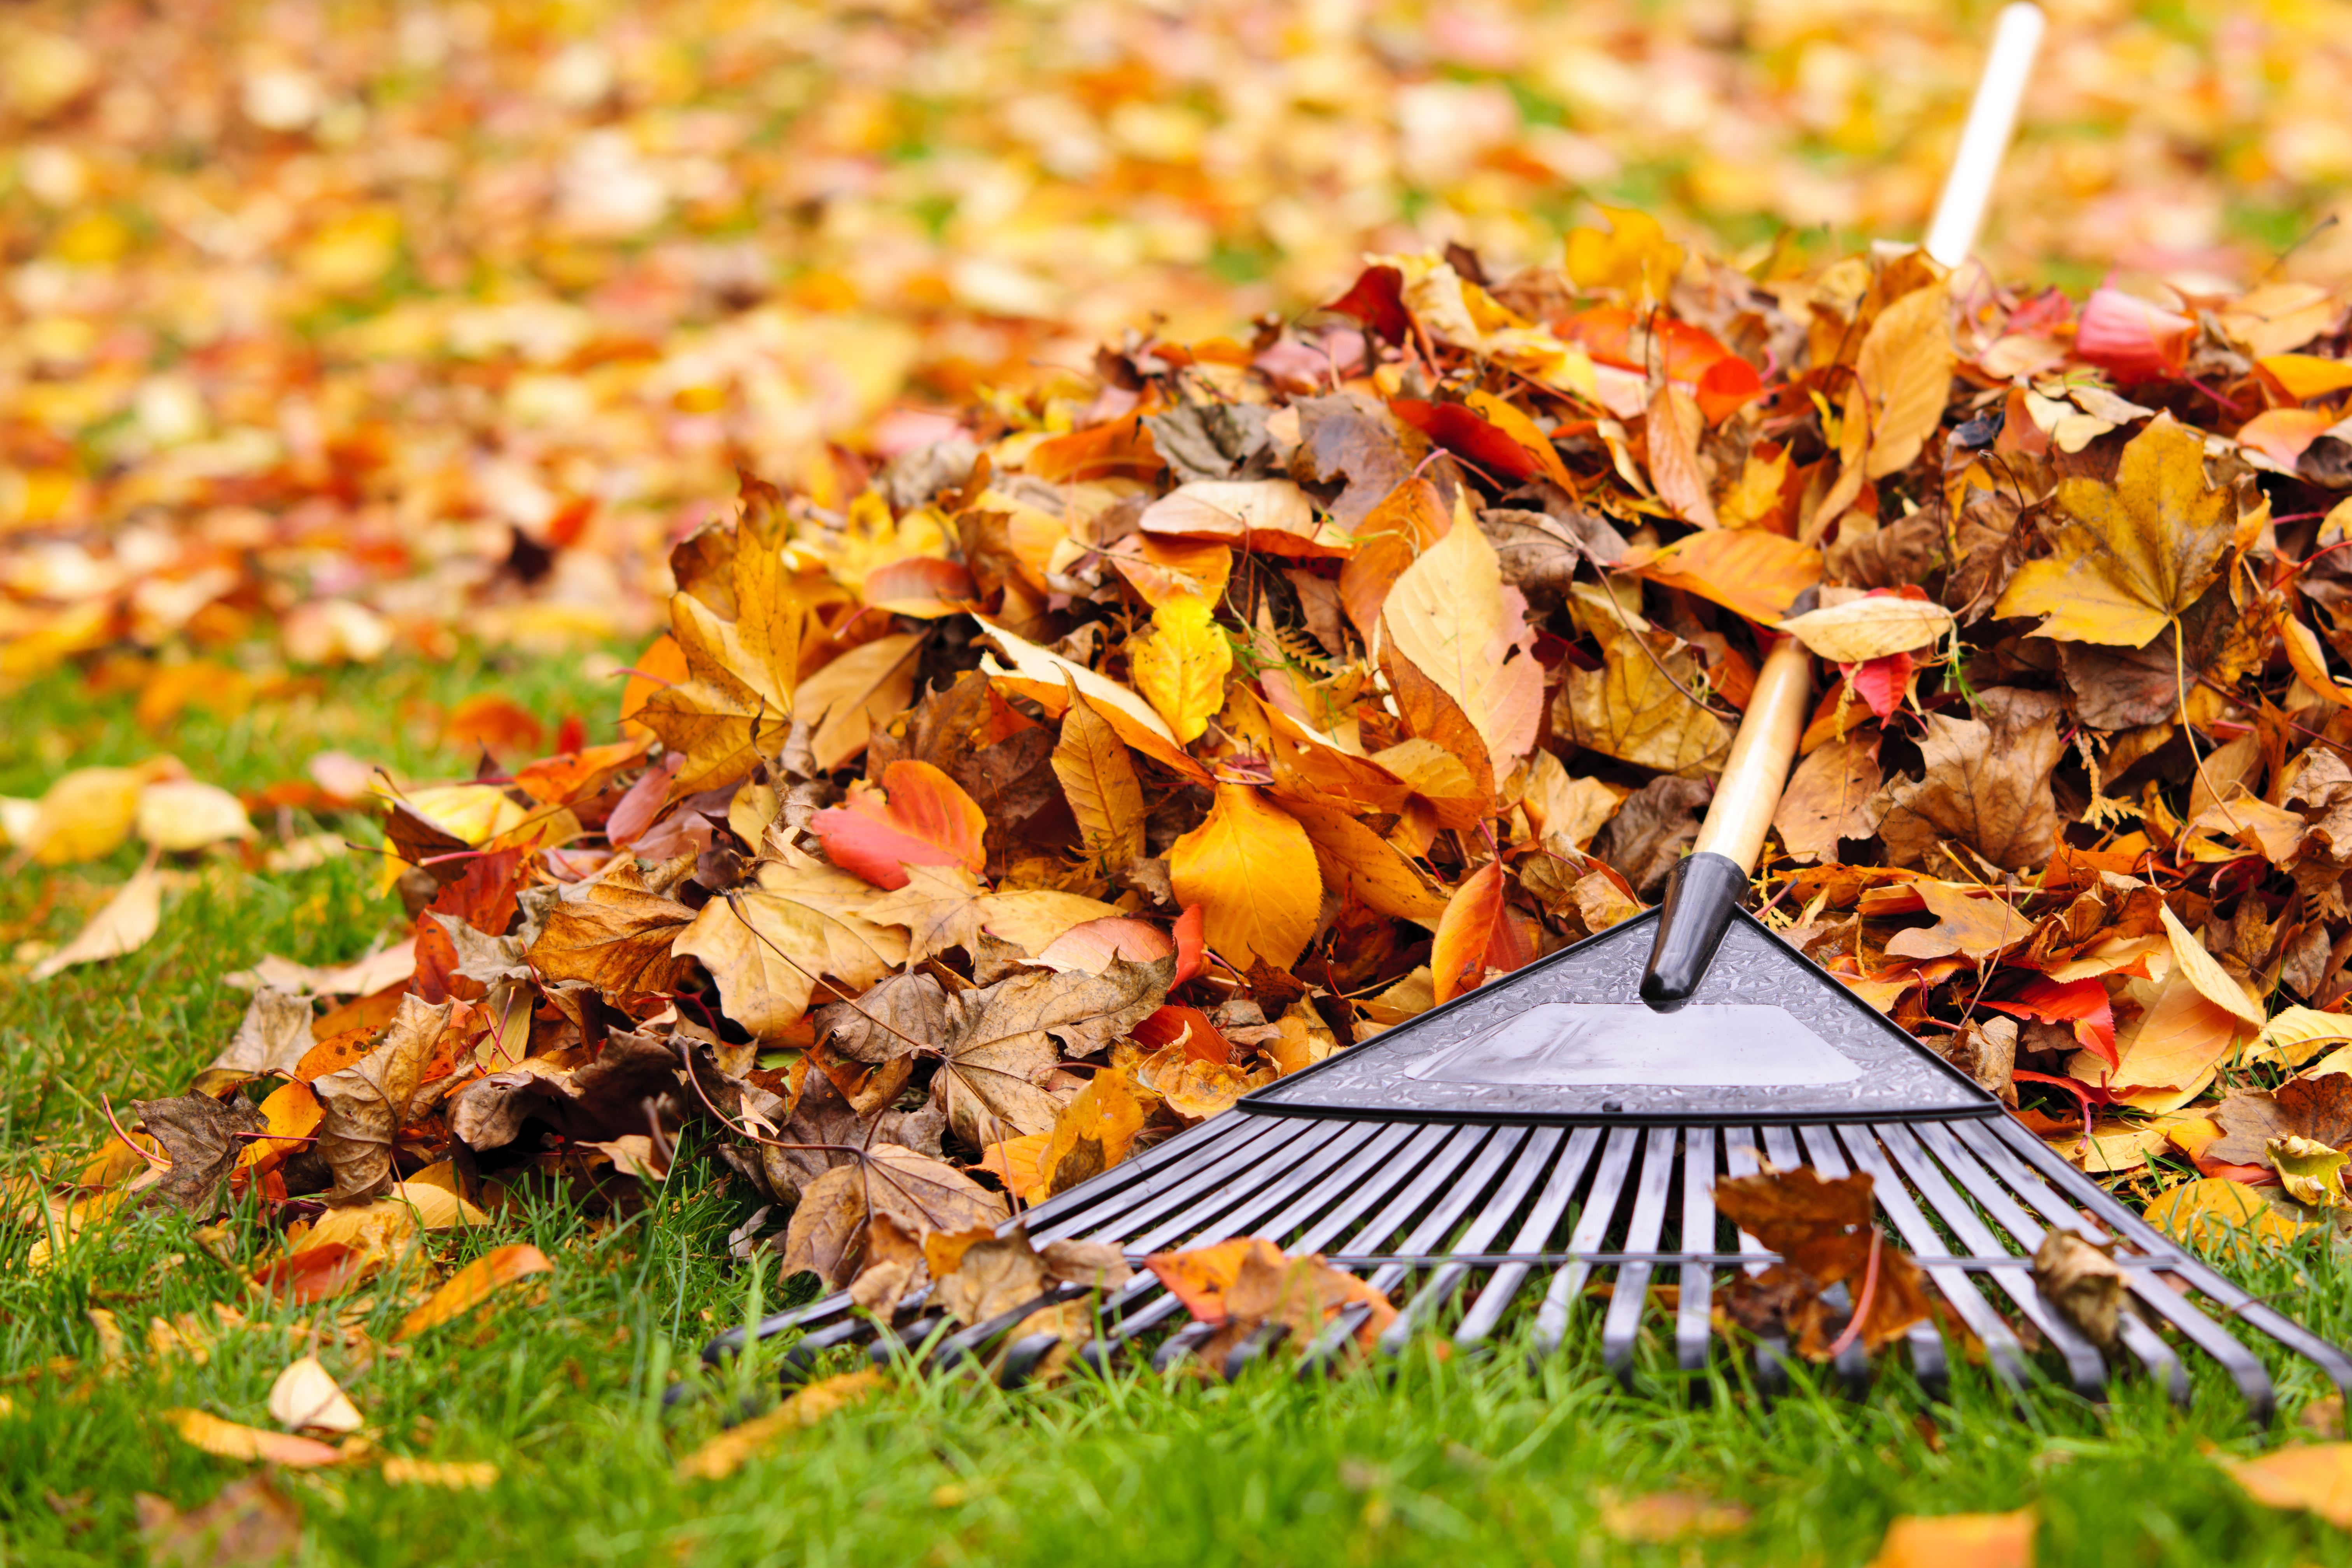 10 Fall Yard Projects to Get Your Yard Ready for Winter| Fall Garden, Fall Gardening, Fall Gardening Ideas, Winter Garden, Winter Gardening, Gardening Chores, Popular Pin #GardeningChores #FallGardeningIdeas #WinterGardening